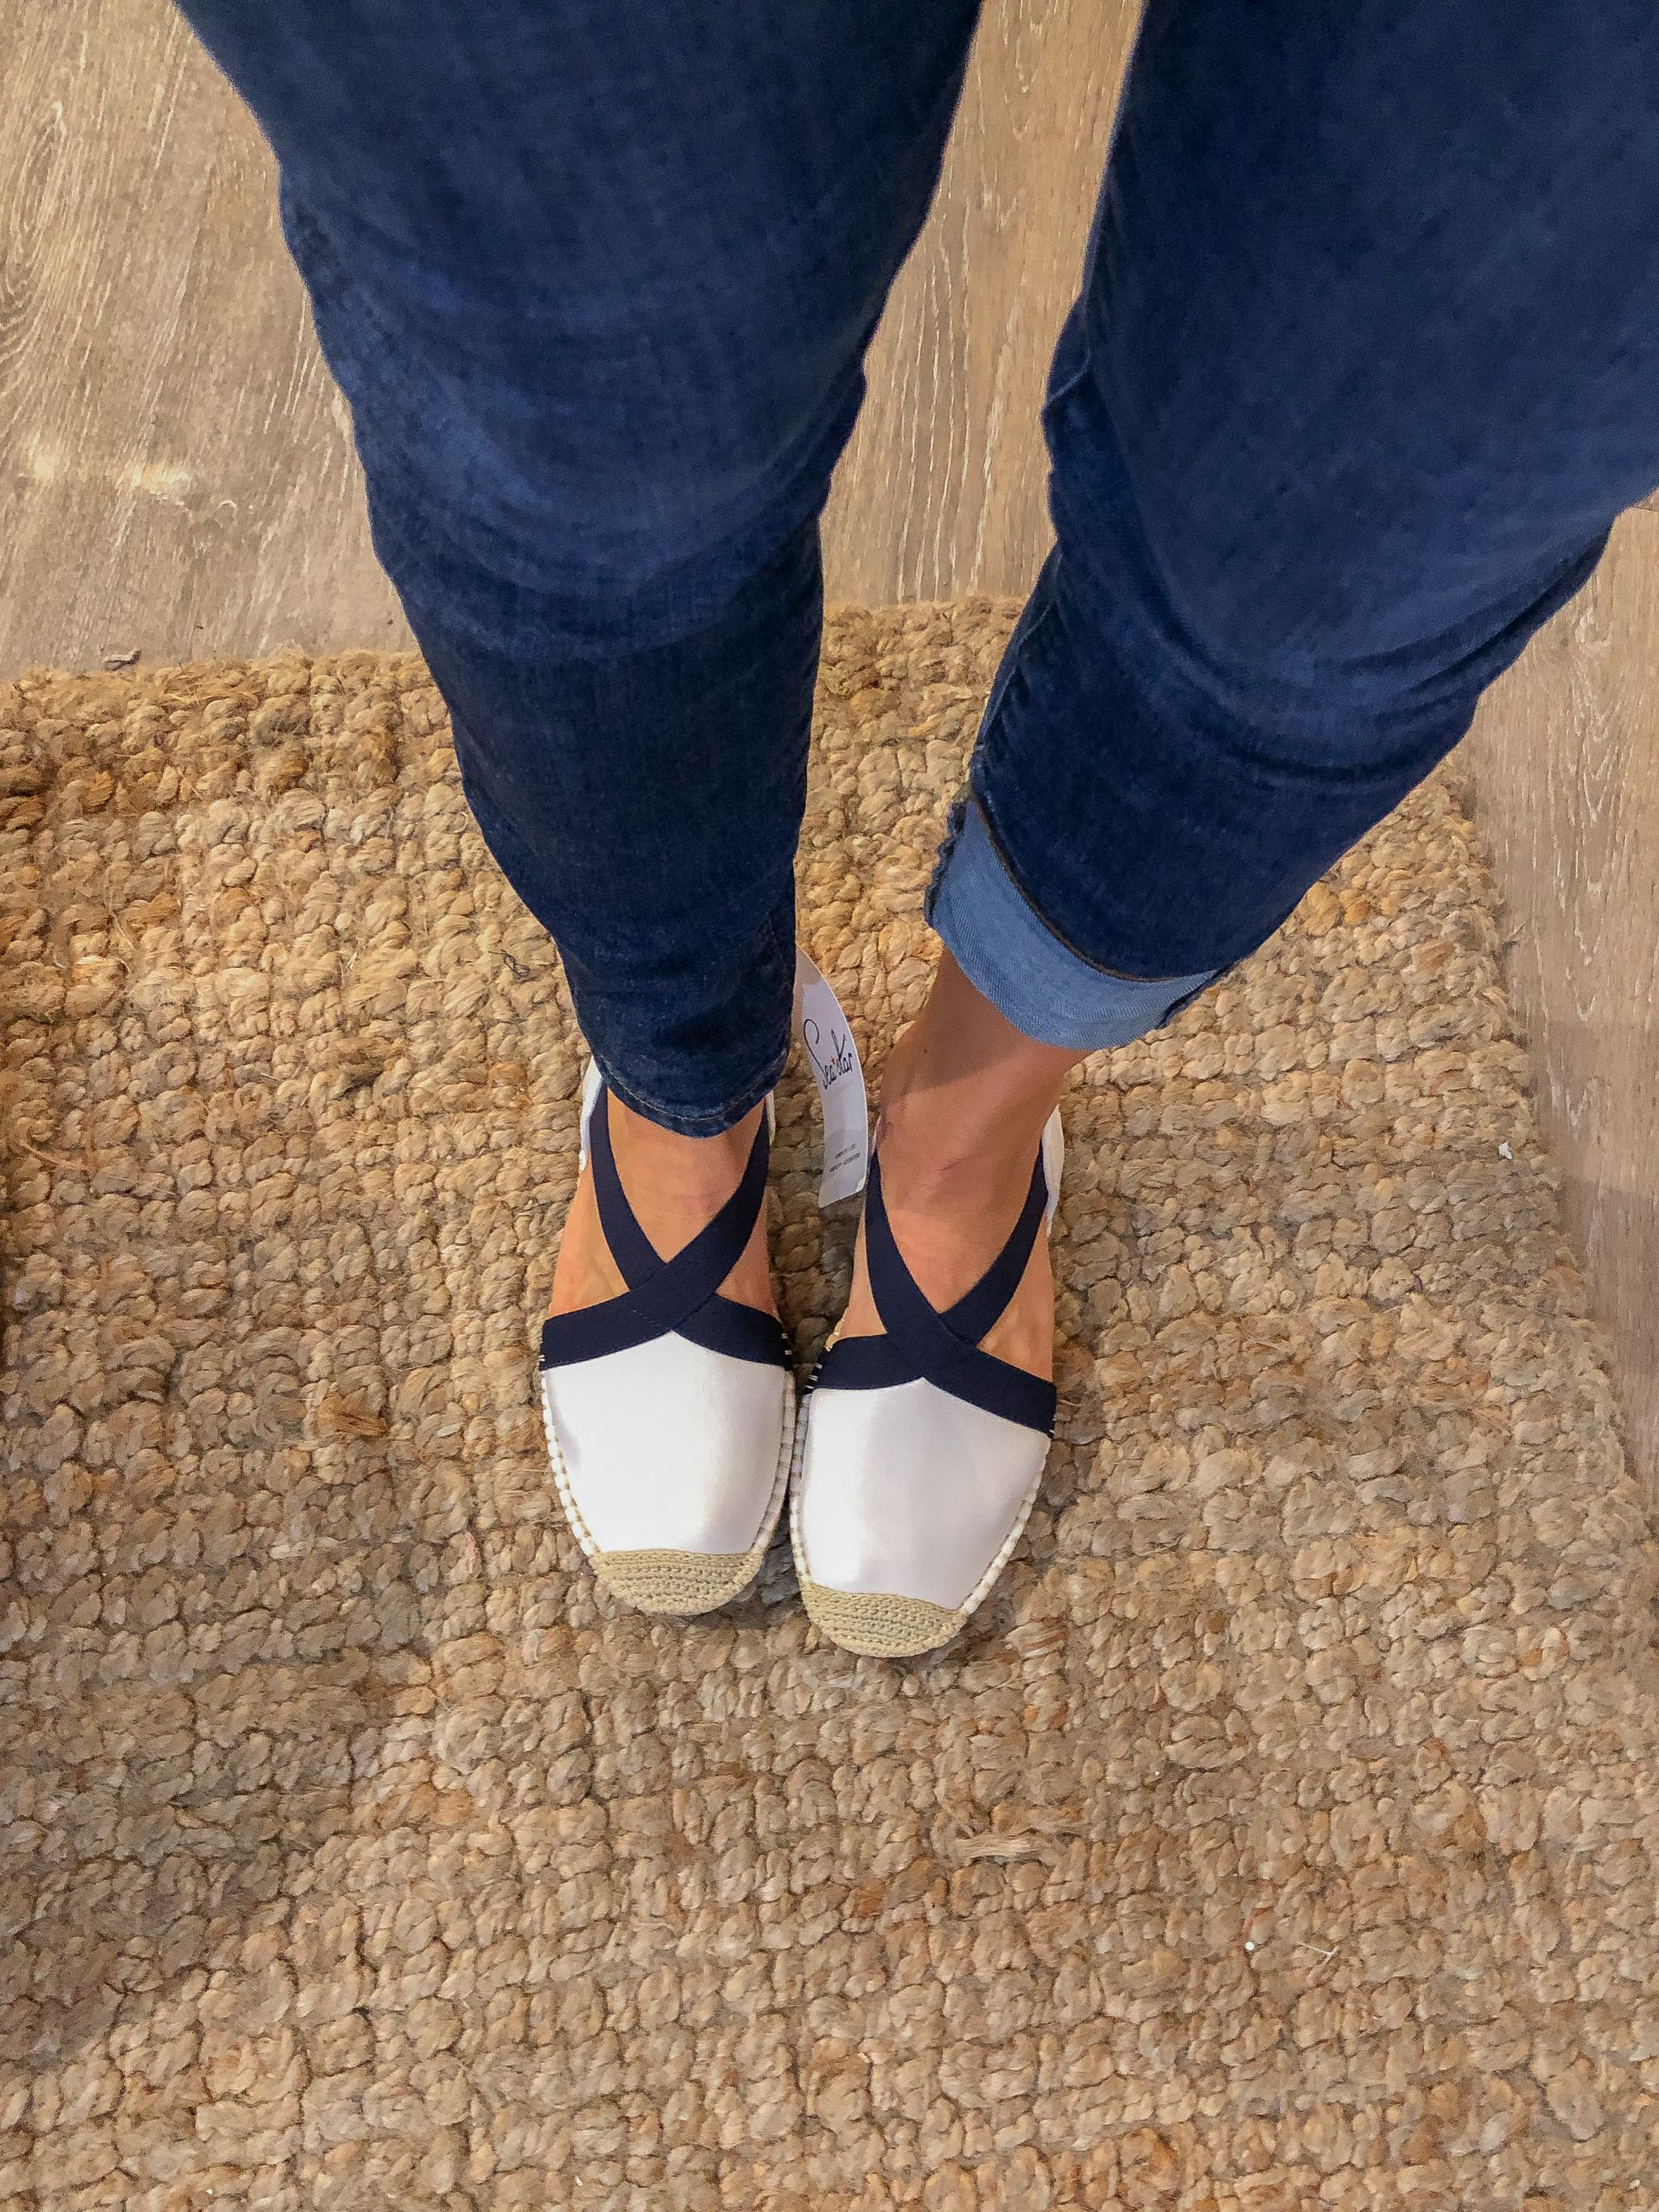 the skinny dip charleston edition - shopping in charleston - best shops in charleston - sea star espadrilles